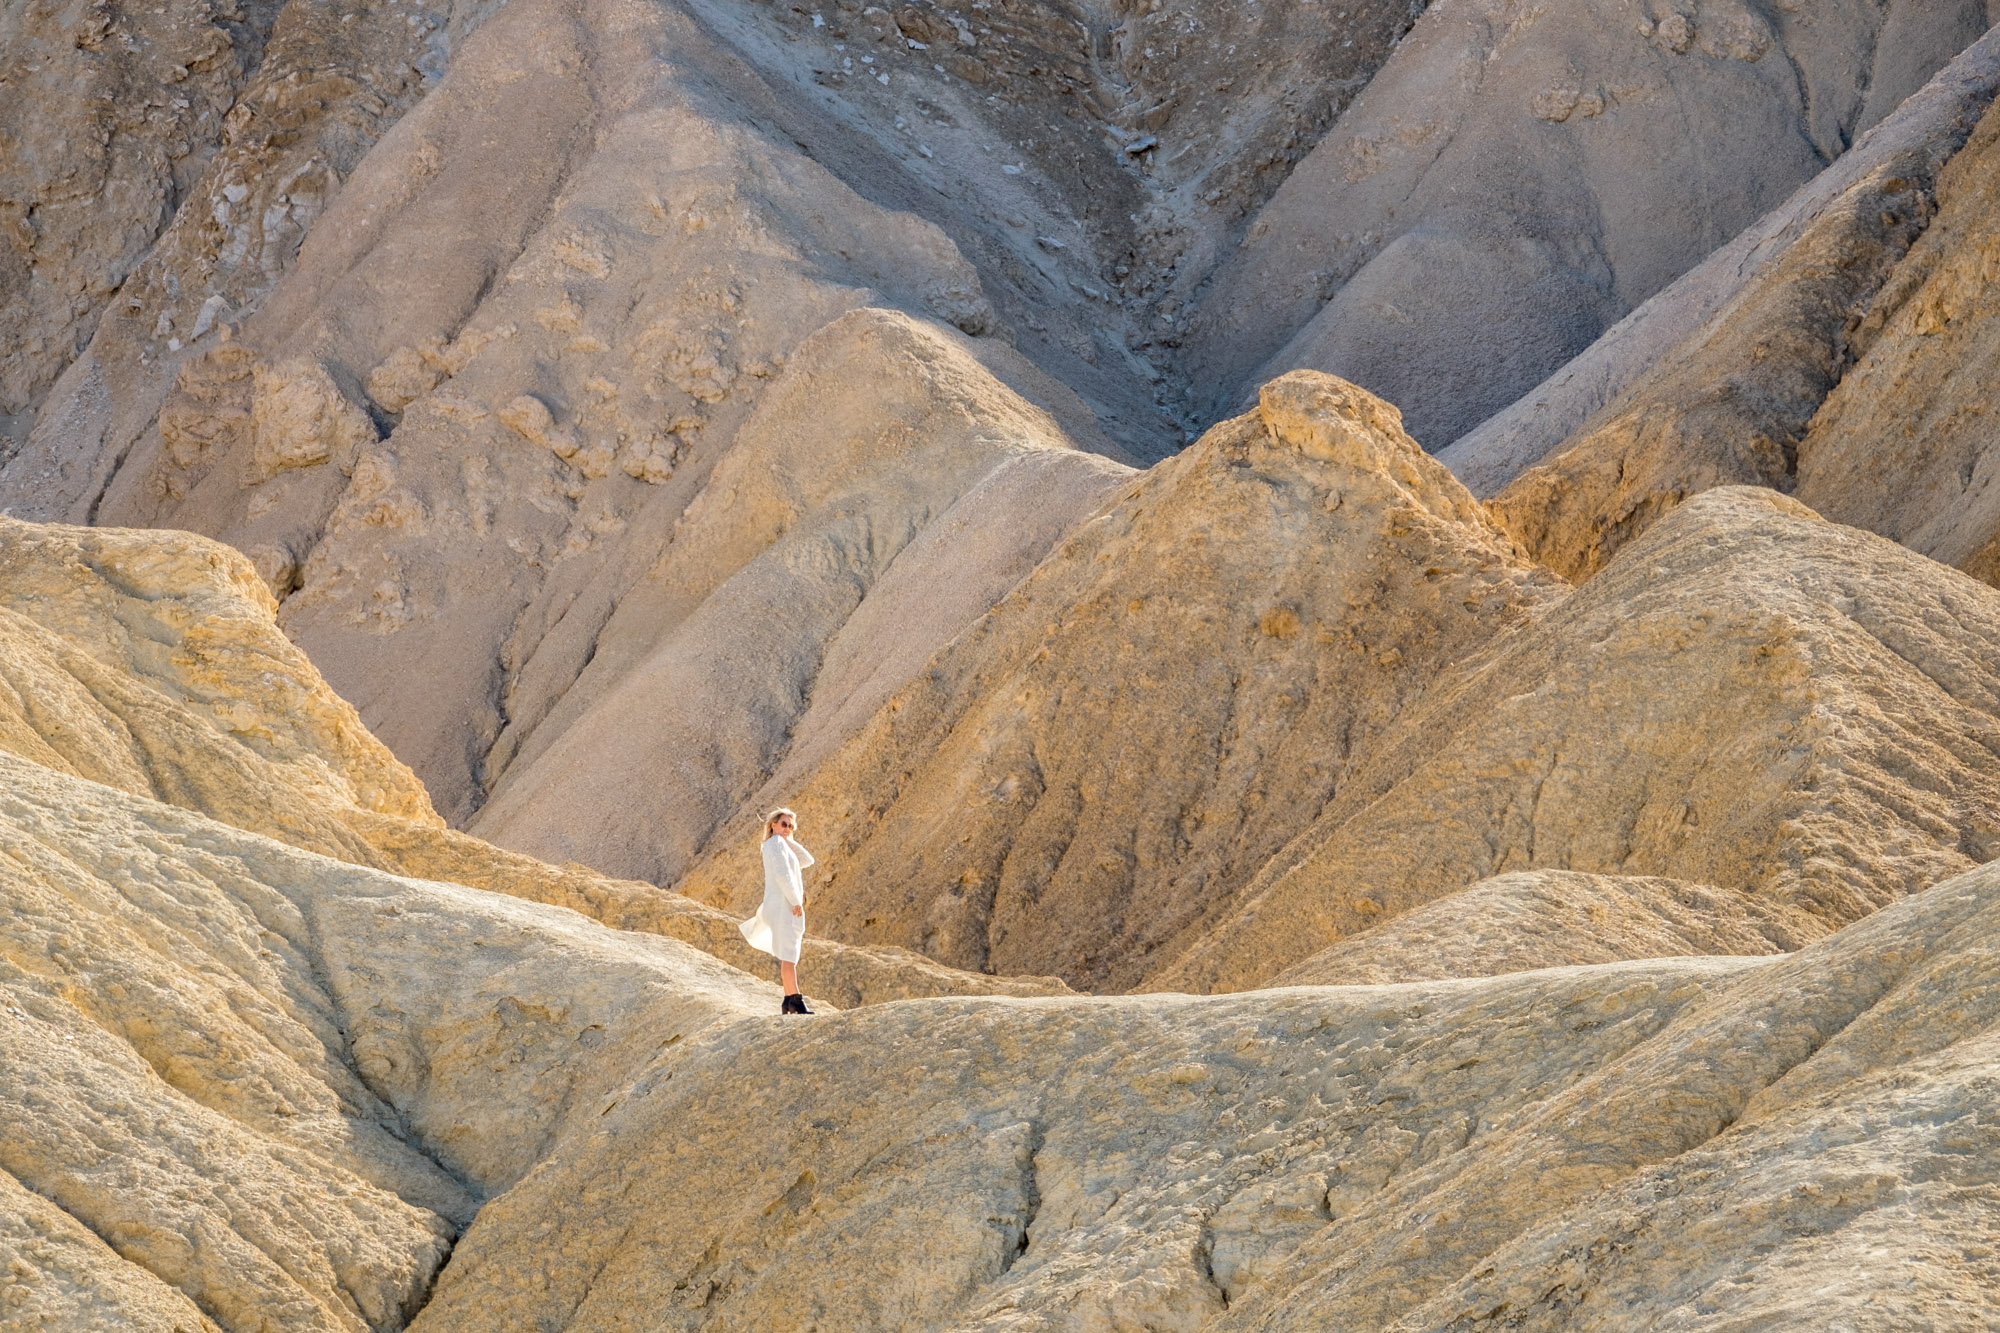 A women in a white dress walks the crazy formations just down the road from Zabriskie Point.